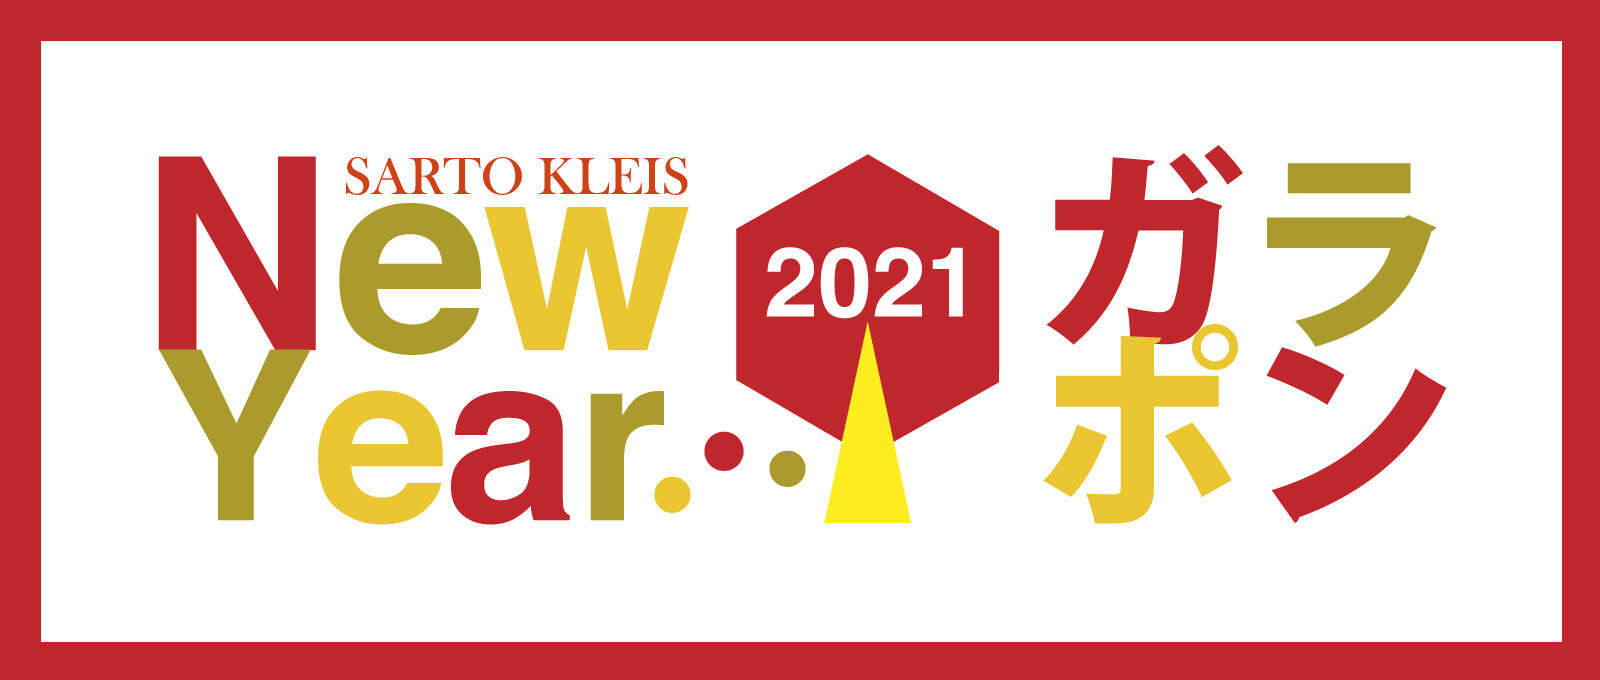 2021 garapon header - New Year ガラポン